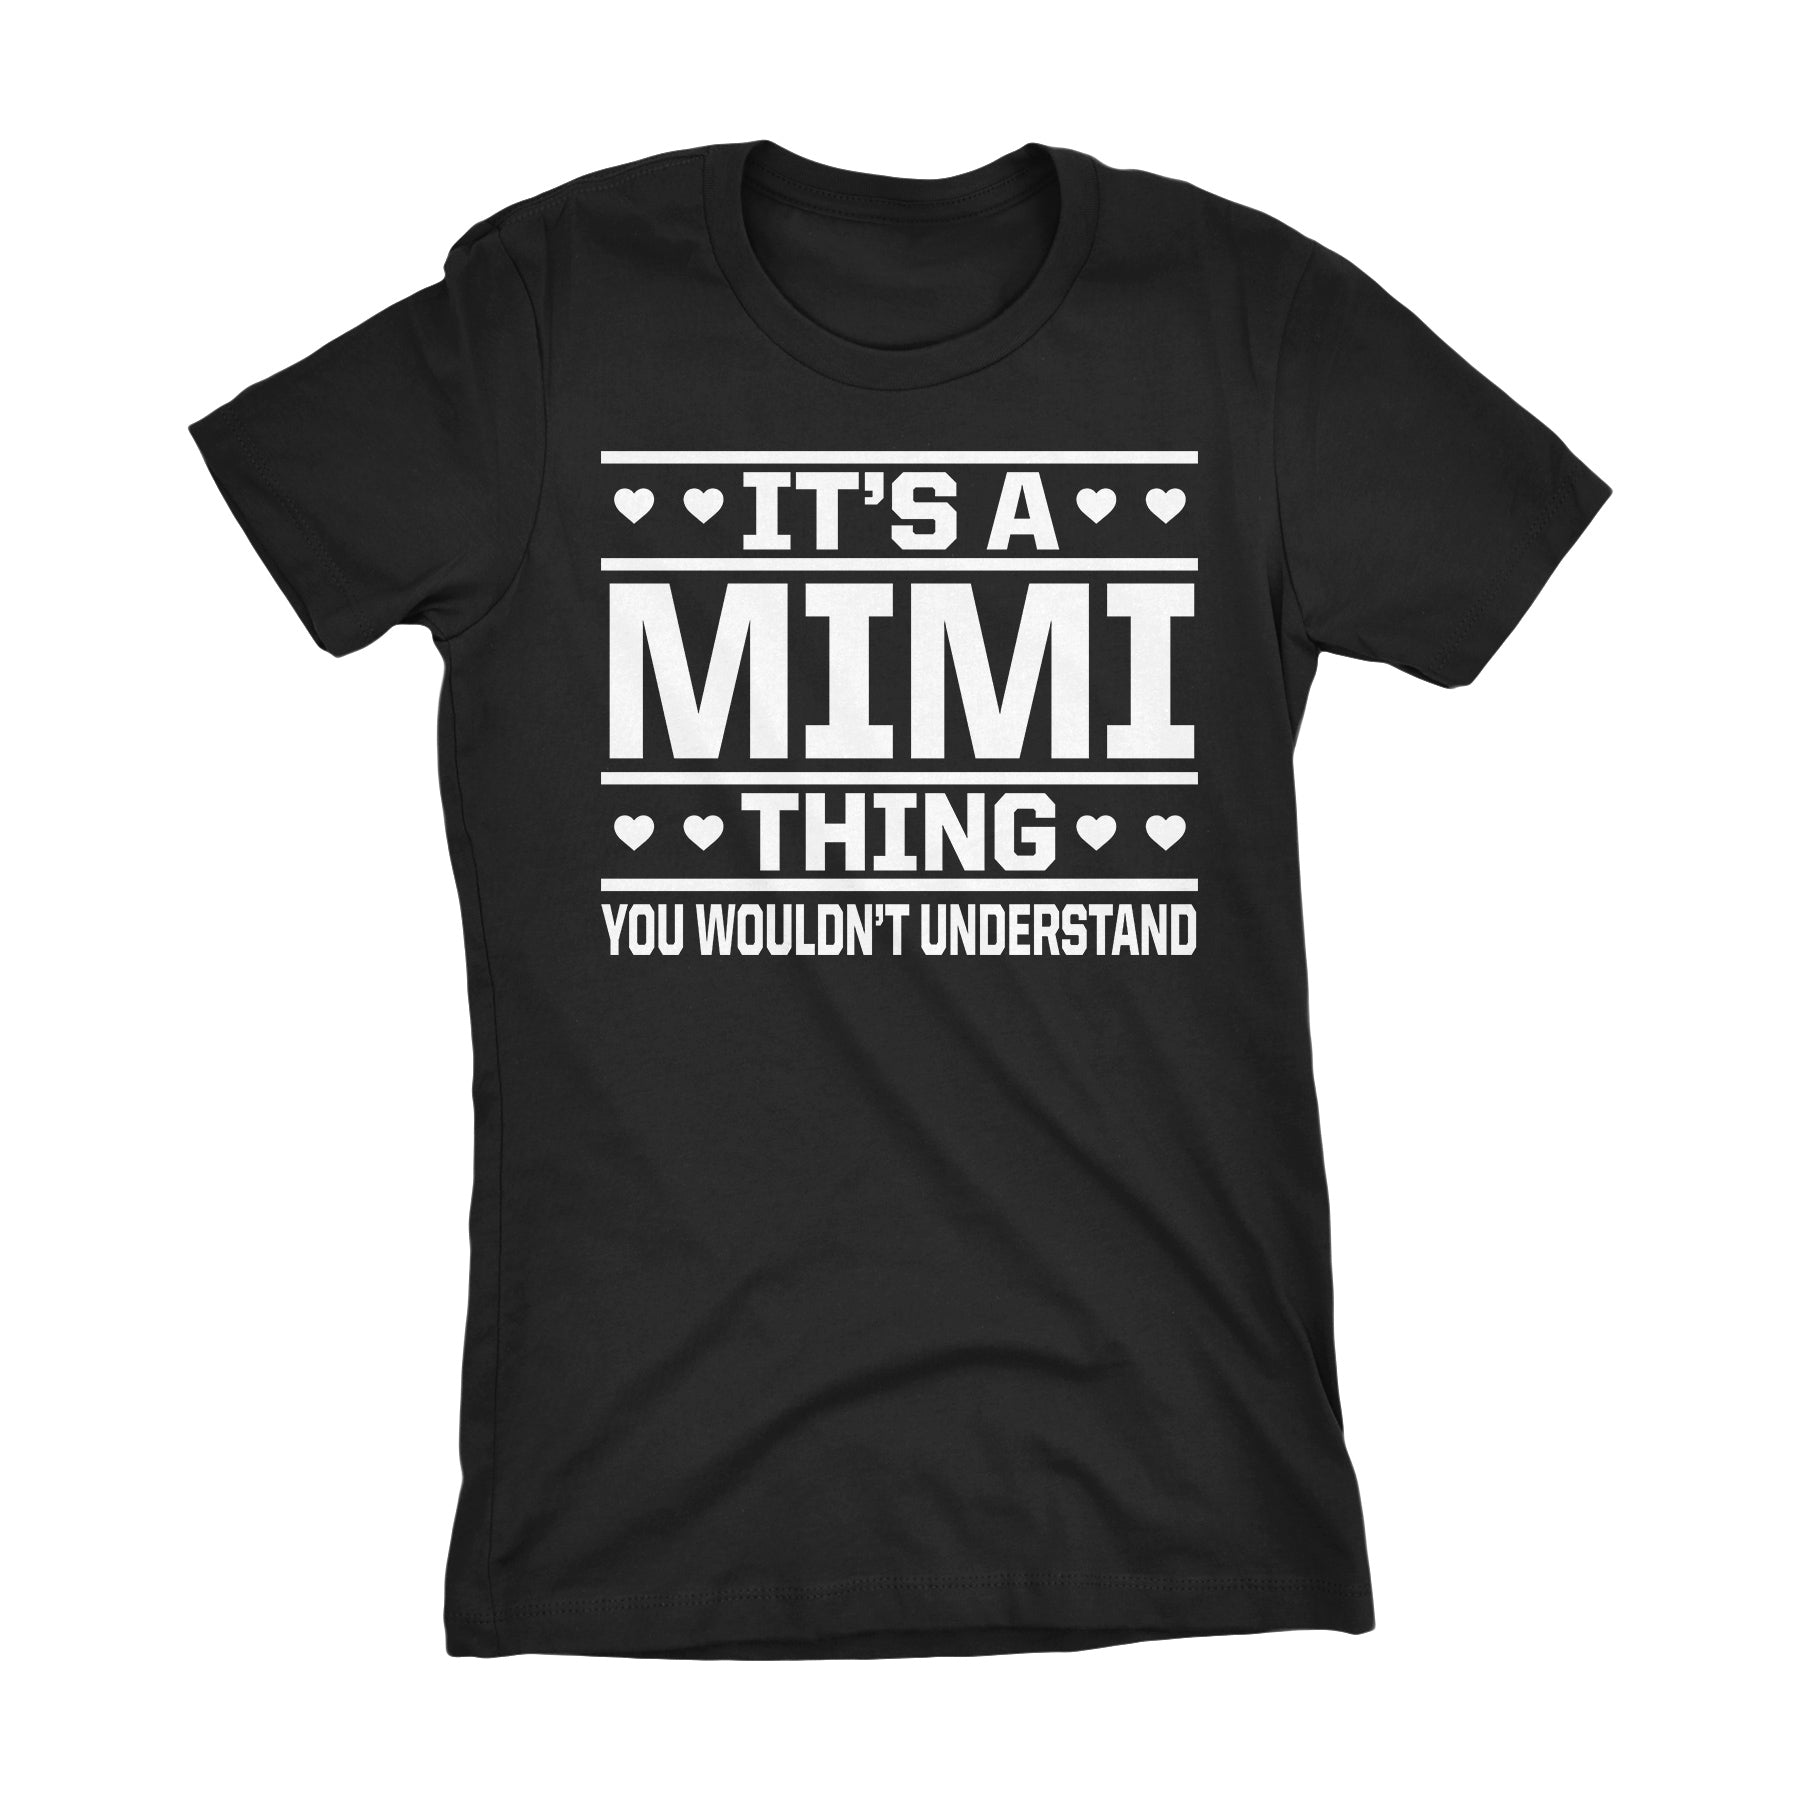 It's A MIMI Thing You Wouldn't Understand - 001 Grandmother Ladies Fit T-shirt